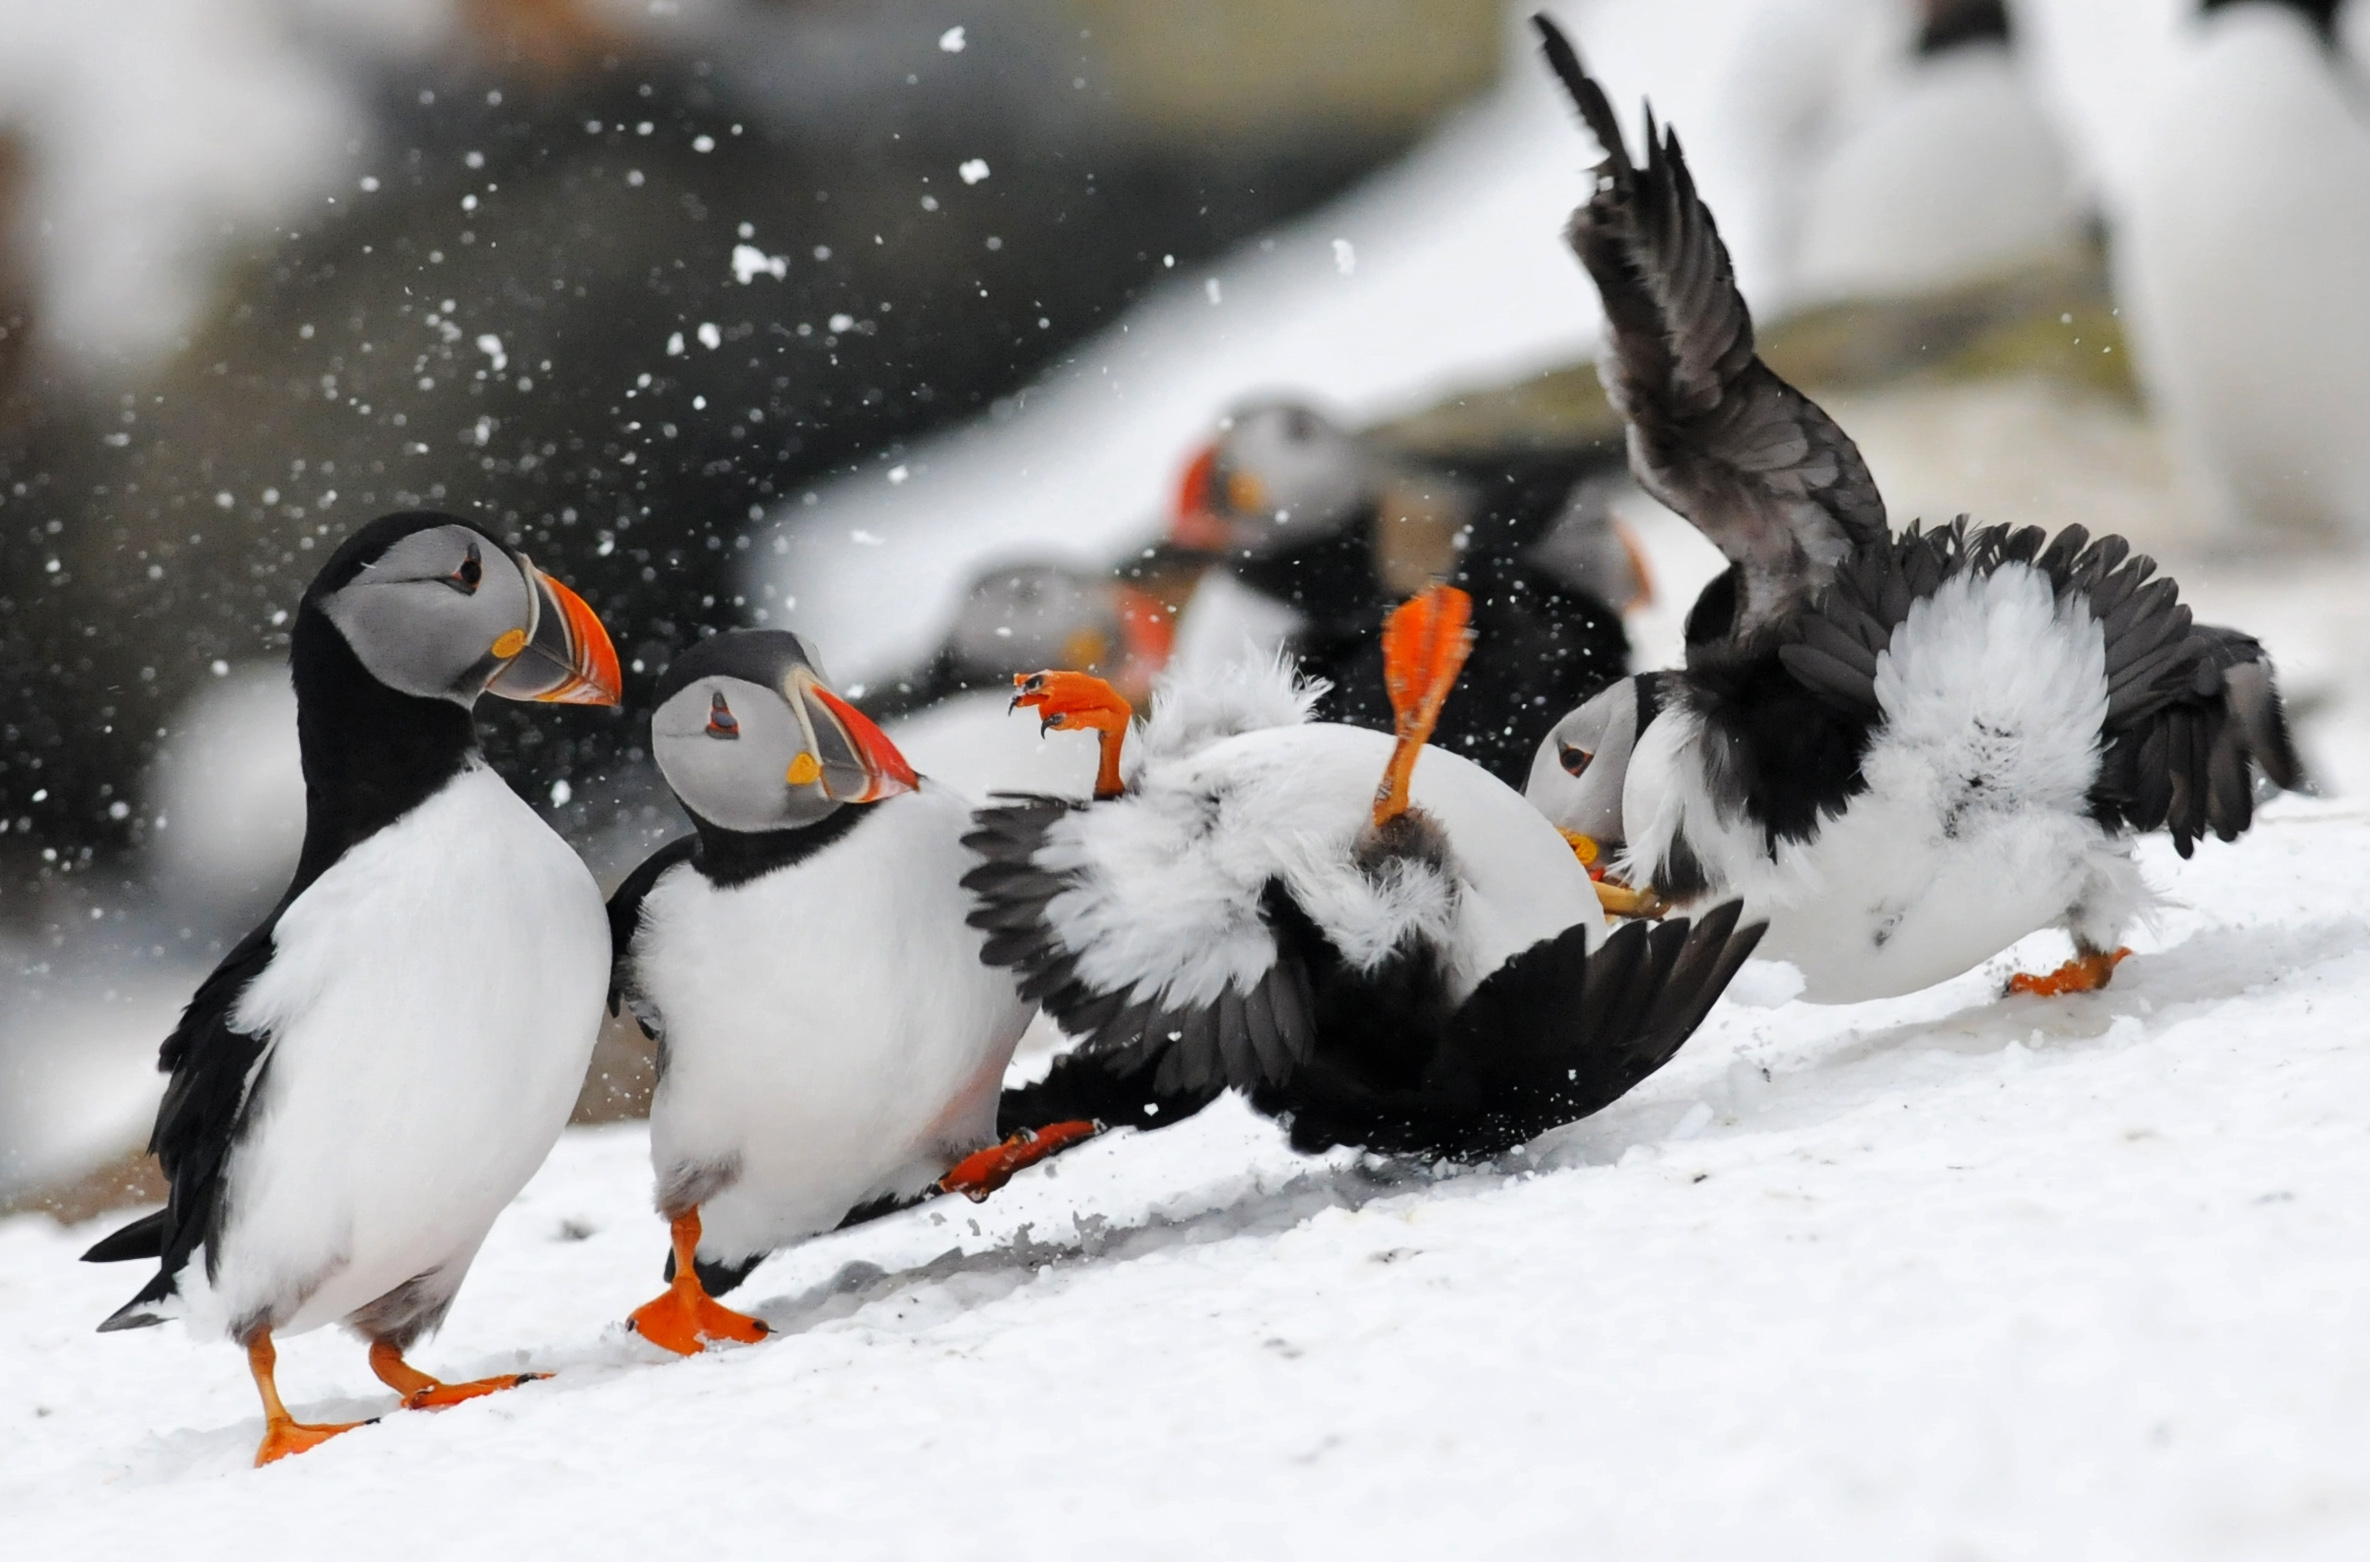 Puffin fight club - spectacle of Hornøya, a home to 100.000 seabirds